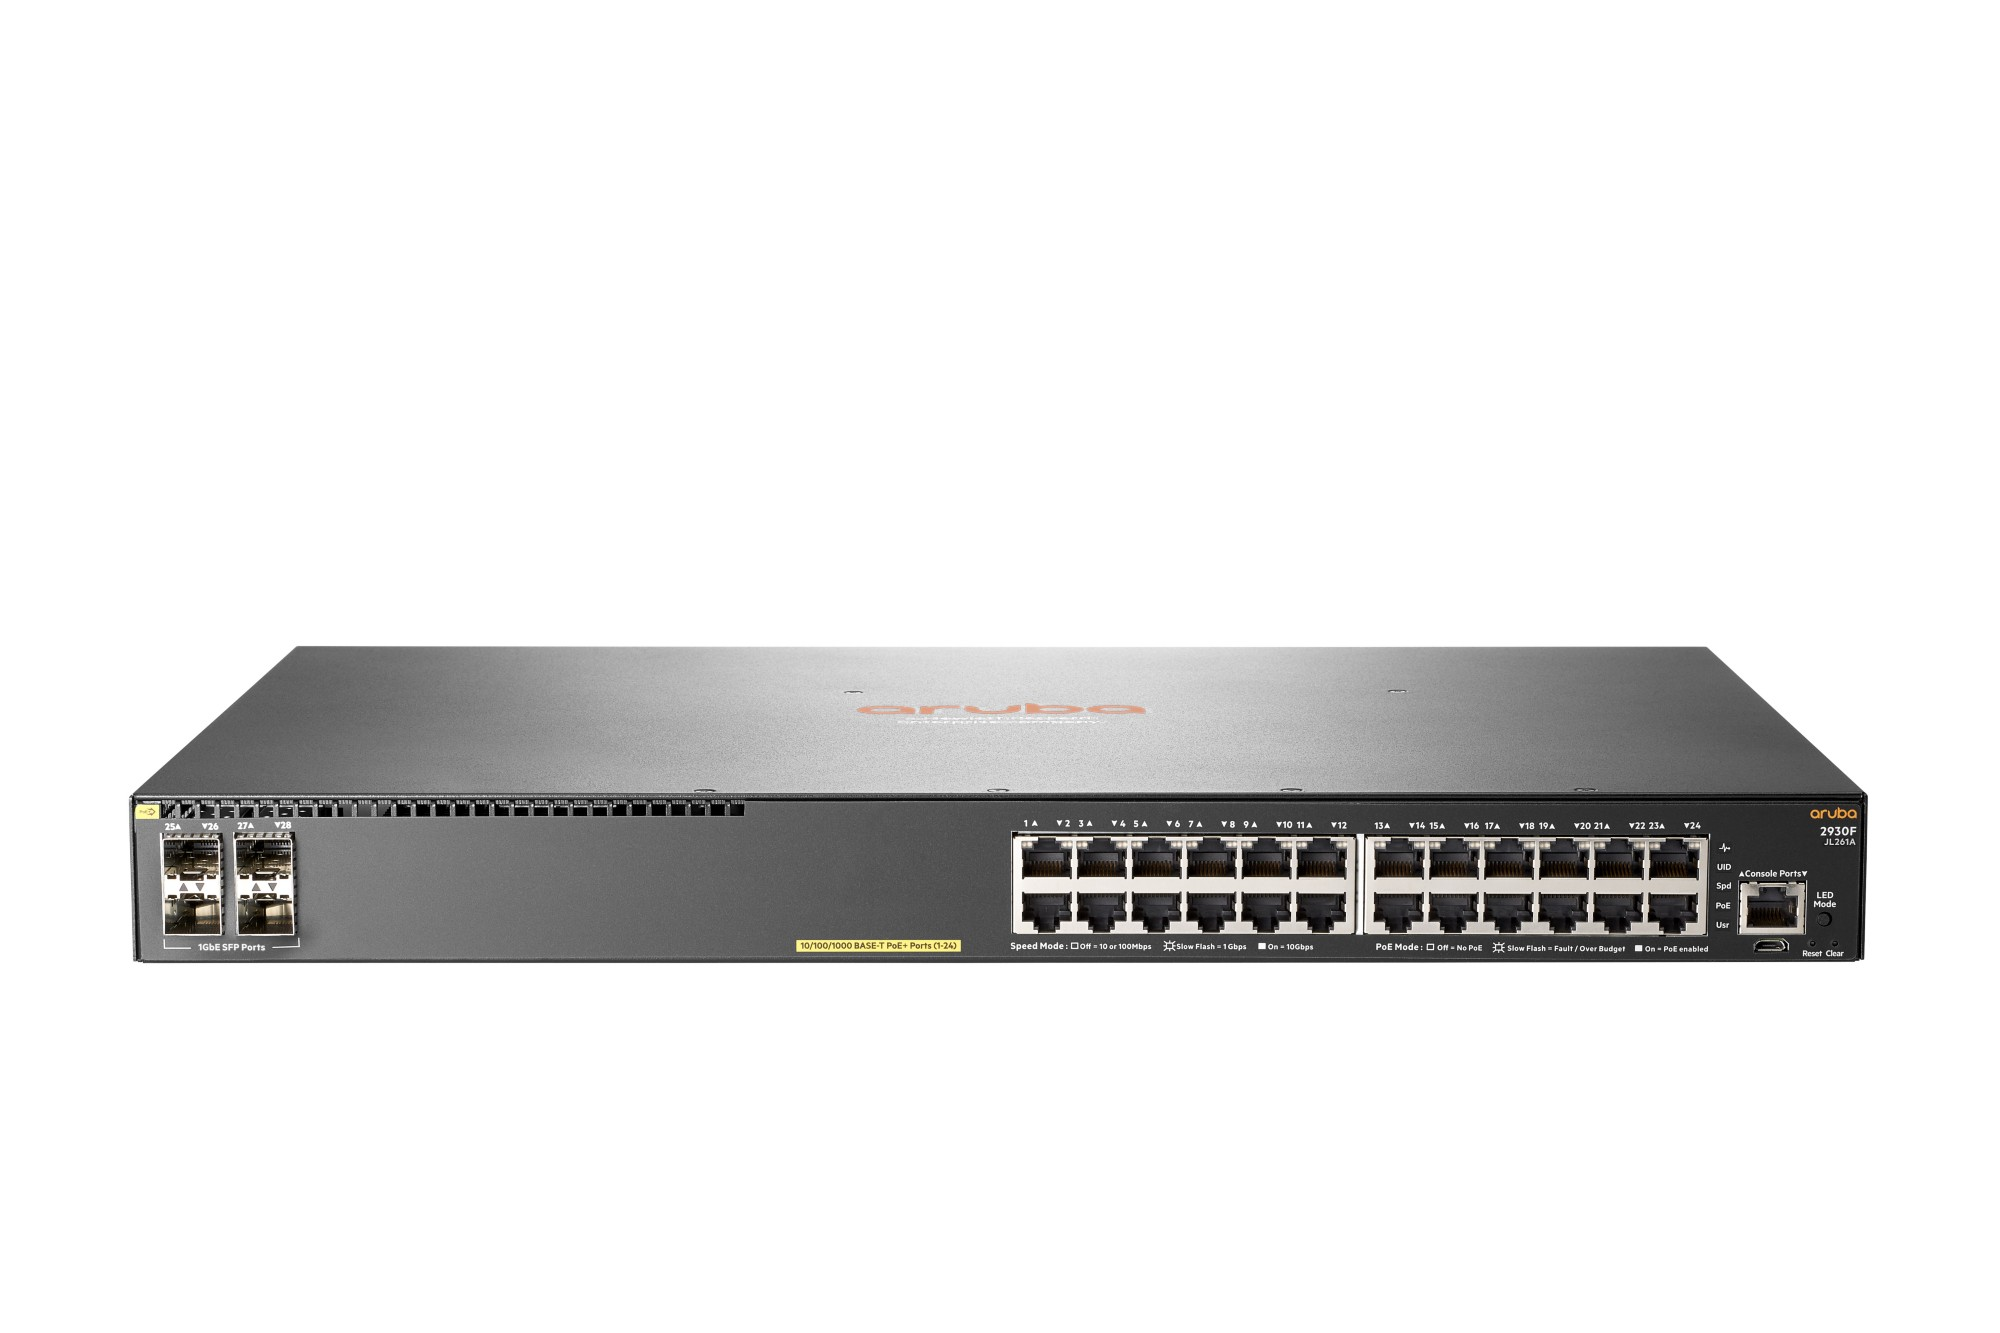 HPE JL261A#ABB ARUBA 2930F 24G POE+ 4SFP MANAGED NETWORK SWITCH L3 GIGABIT ETHERNET (10/100/1000) POWER OVER (POE) 1U GREY